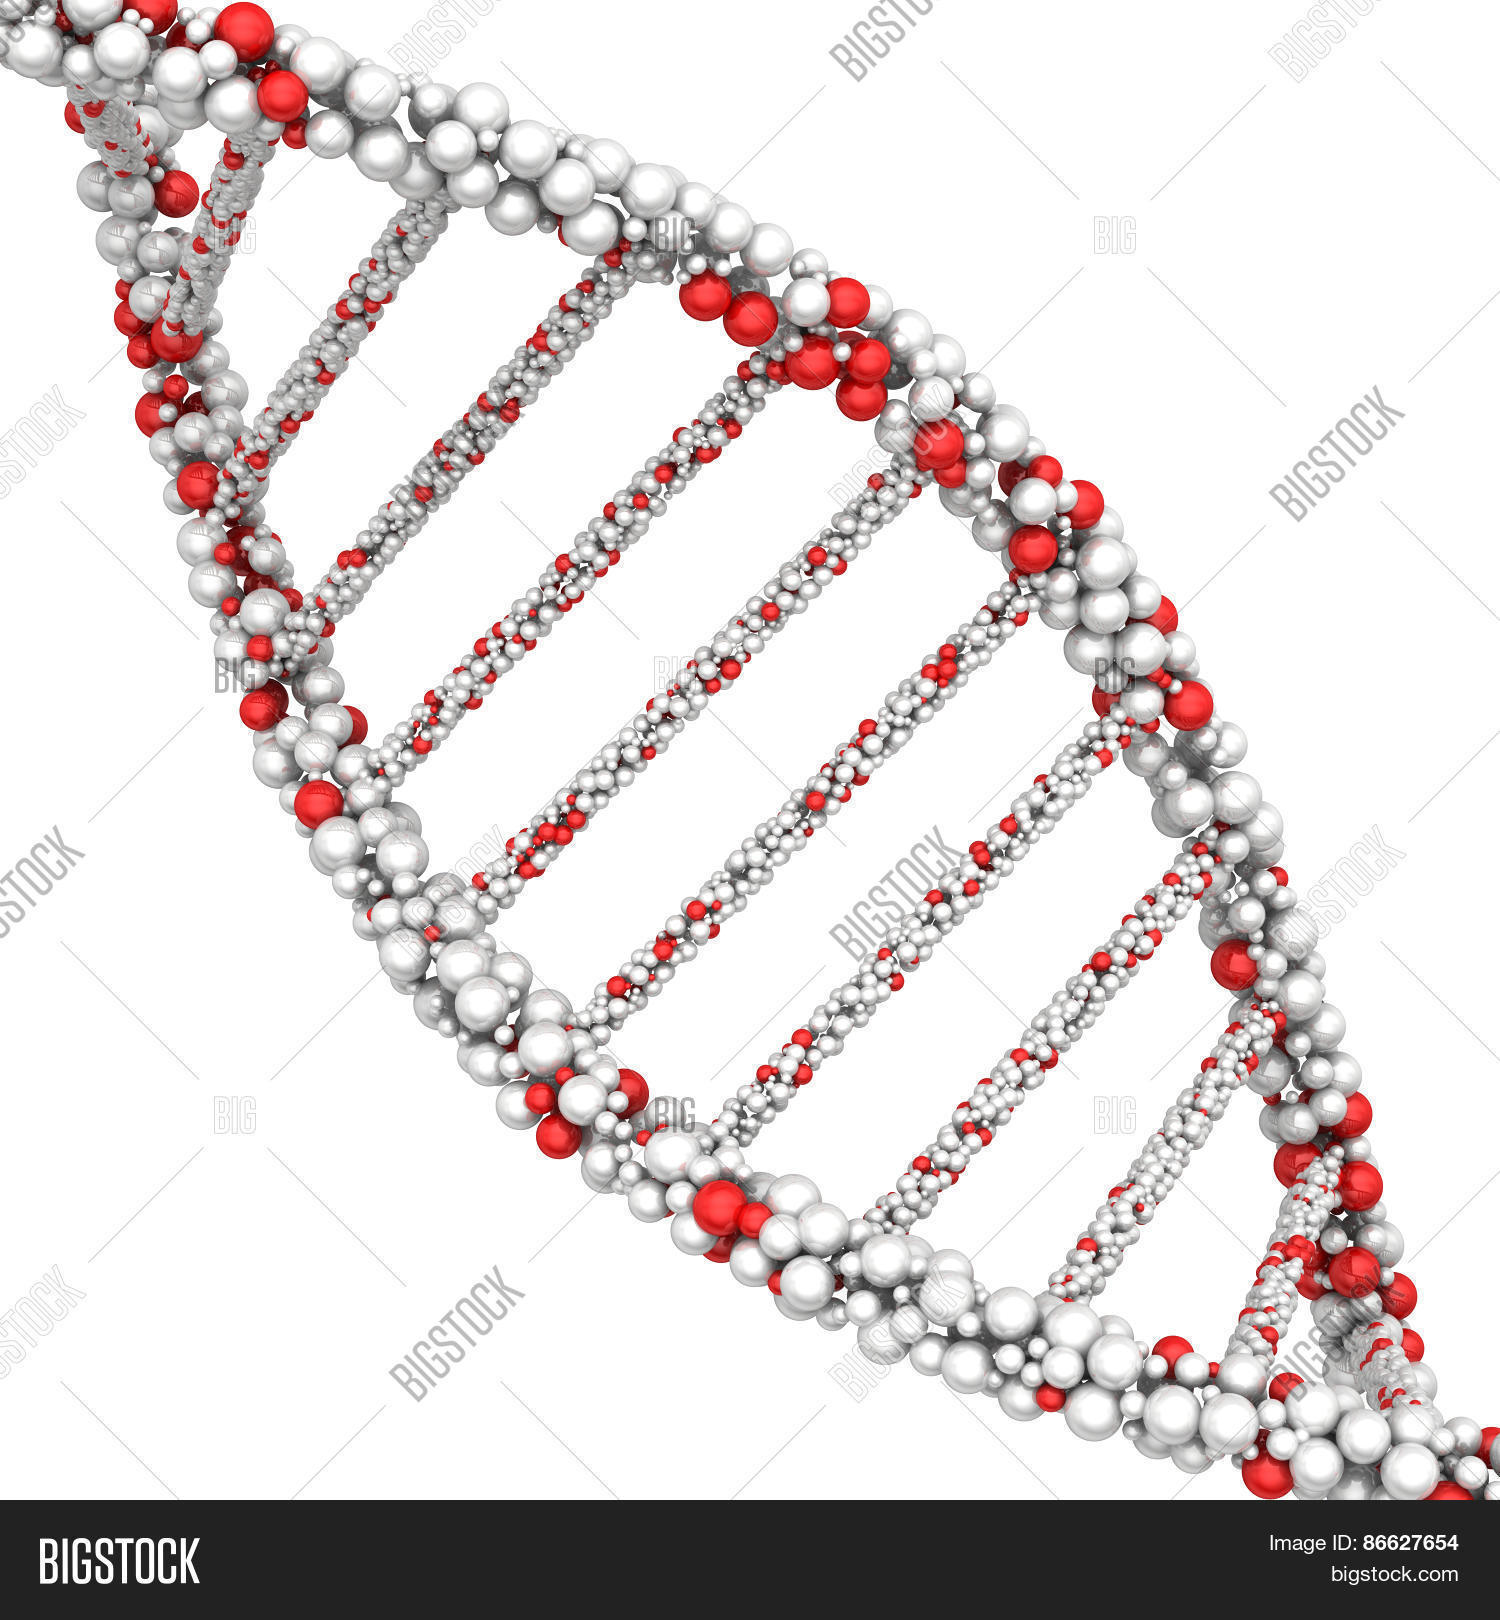 abstract,adenine,background,ball,bio,biochemistry,biology,biotech,biotechnology,cell,chemistry,chromosome,clone,cytosine,dna,dna strand,double,evolution,experiment,gene,genetically,genetics,genome,guanine,health,helix,human,life,medical,medicine,micro,microbiology,microscopic,molecular,molecule,pharmaceutical,pharmacy,reflection,research,rna,science,scientific,sphere,spiral,stem,strand,technology,test,thymine,virus